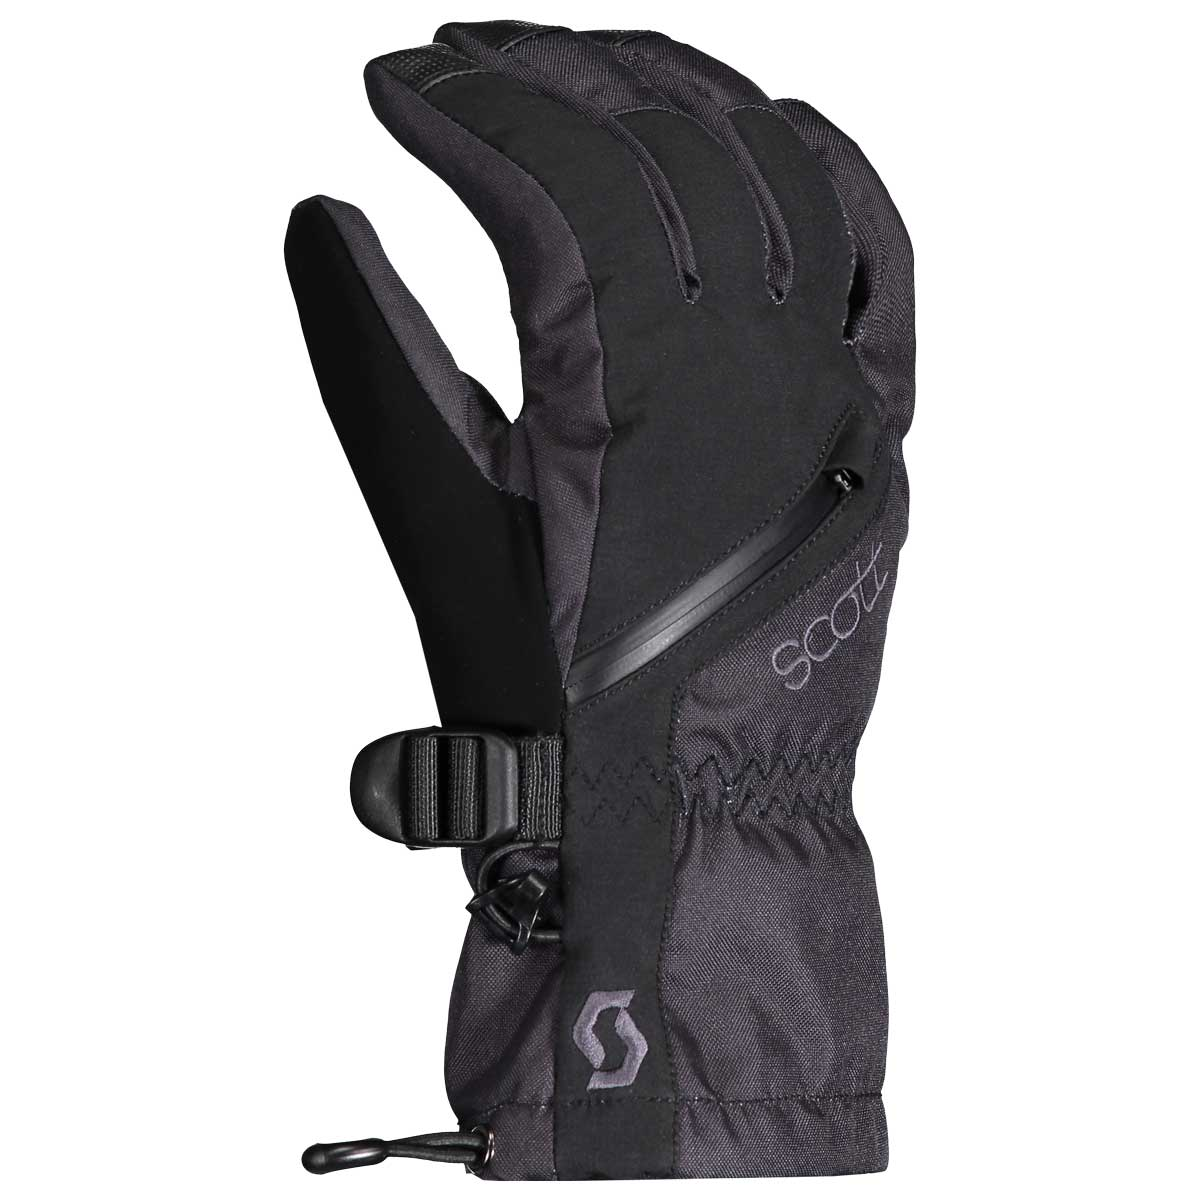 scott women's ultimate pro gloves in black